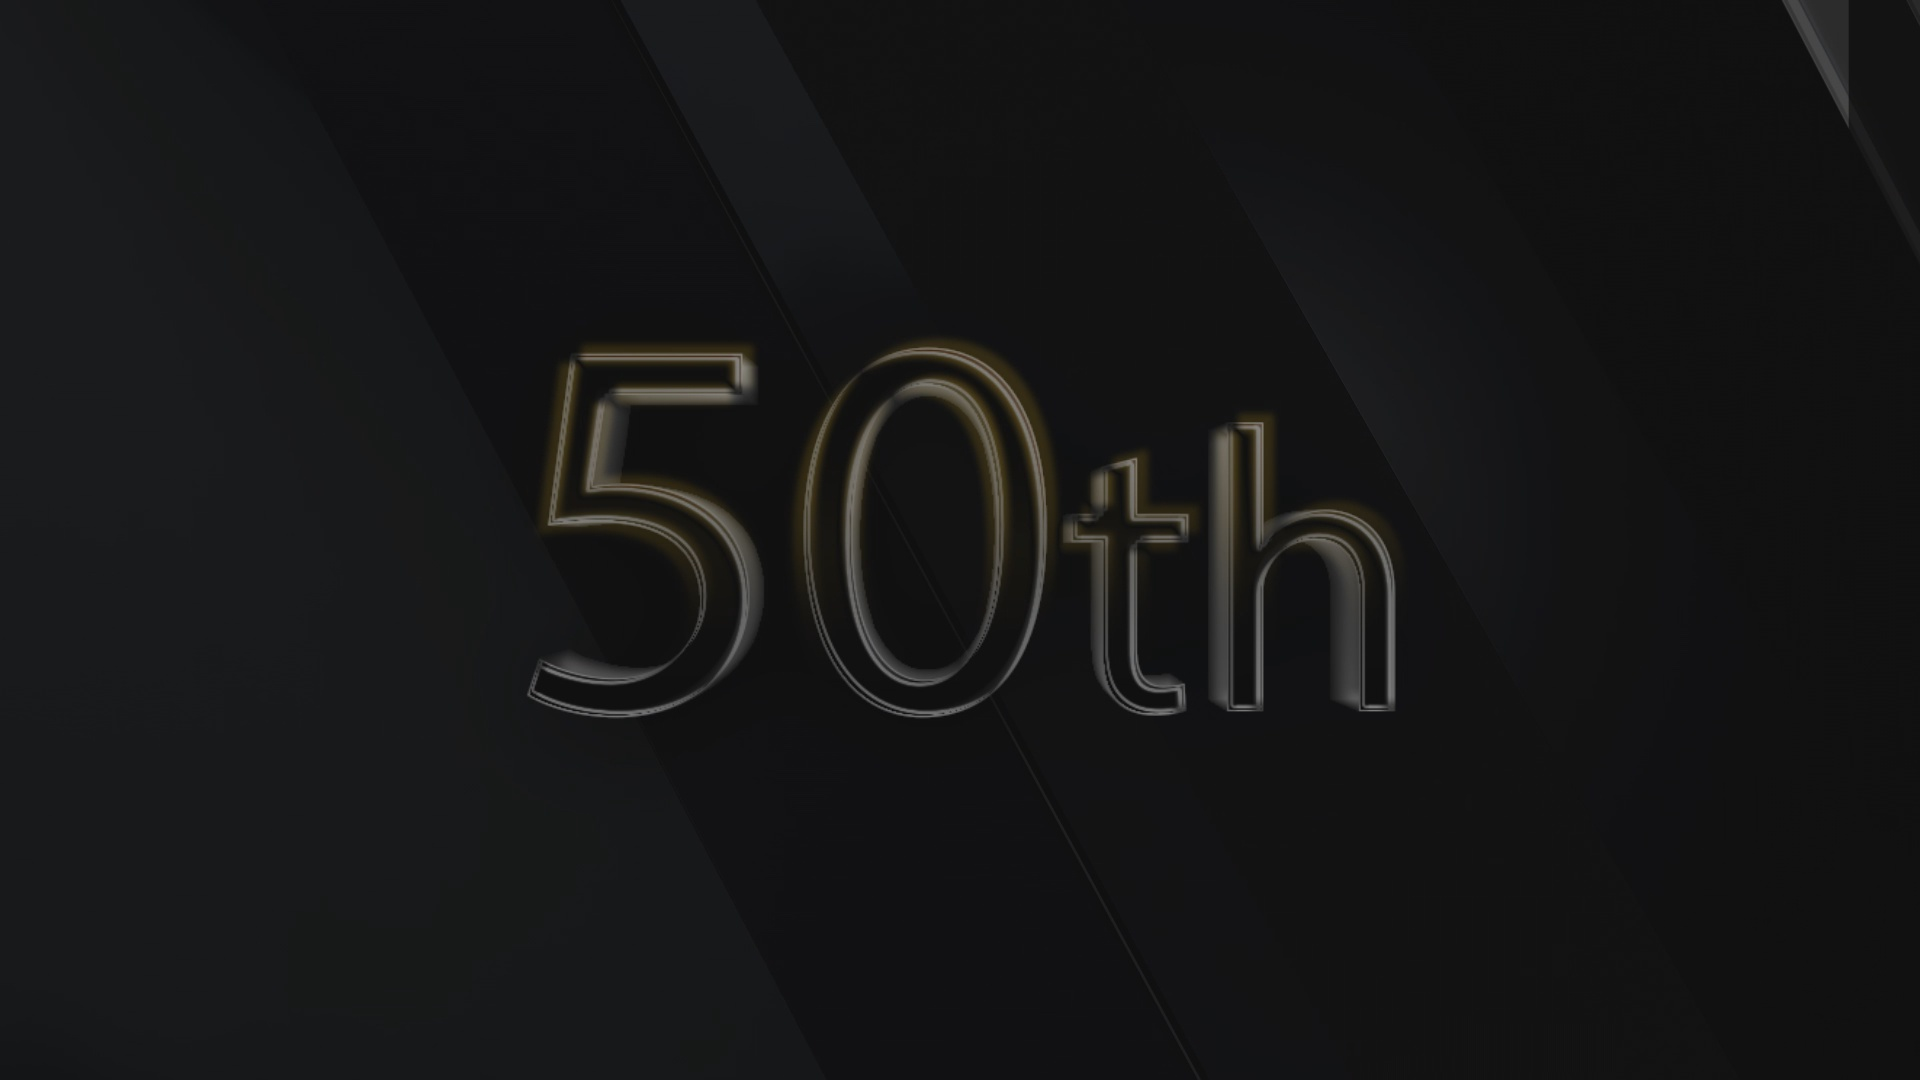 50th anniversary 1 Christian Animated Still A professional animated intro that's stops on a still image without continuous movements distraction